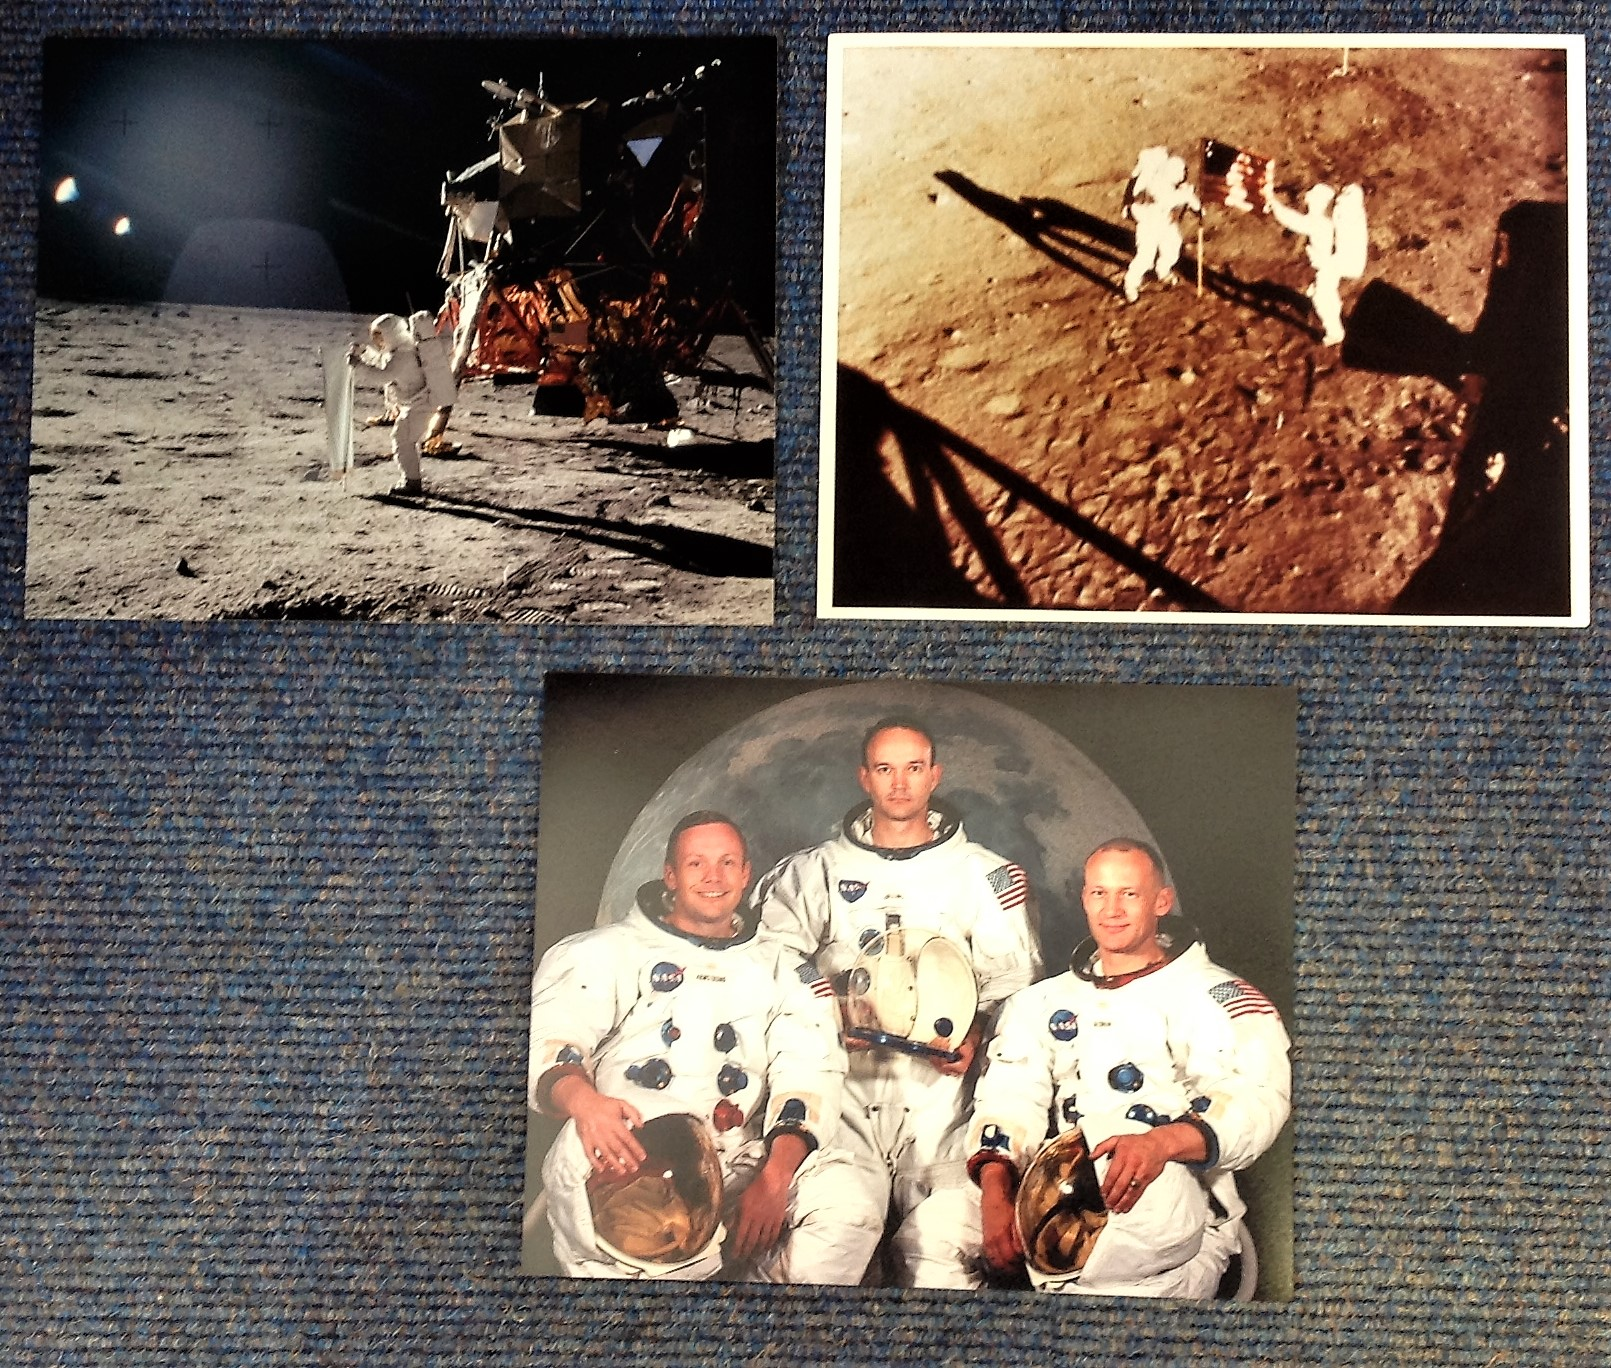 Lot 7 - Space collection includes 3, 10x8 colour photos pictured includes The Apollo II crew, Neil Armstrong